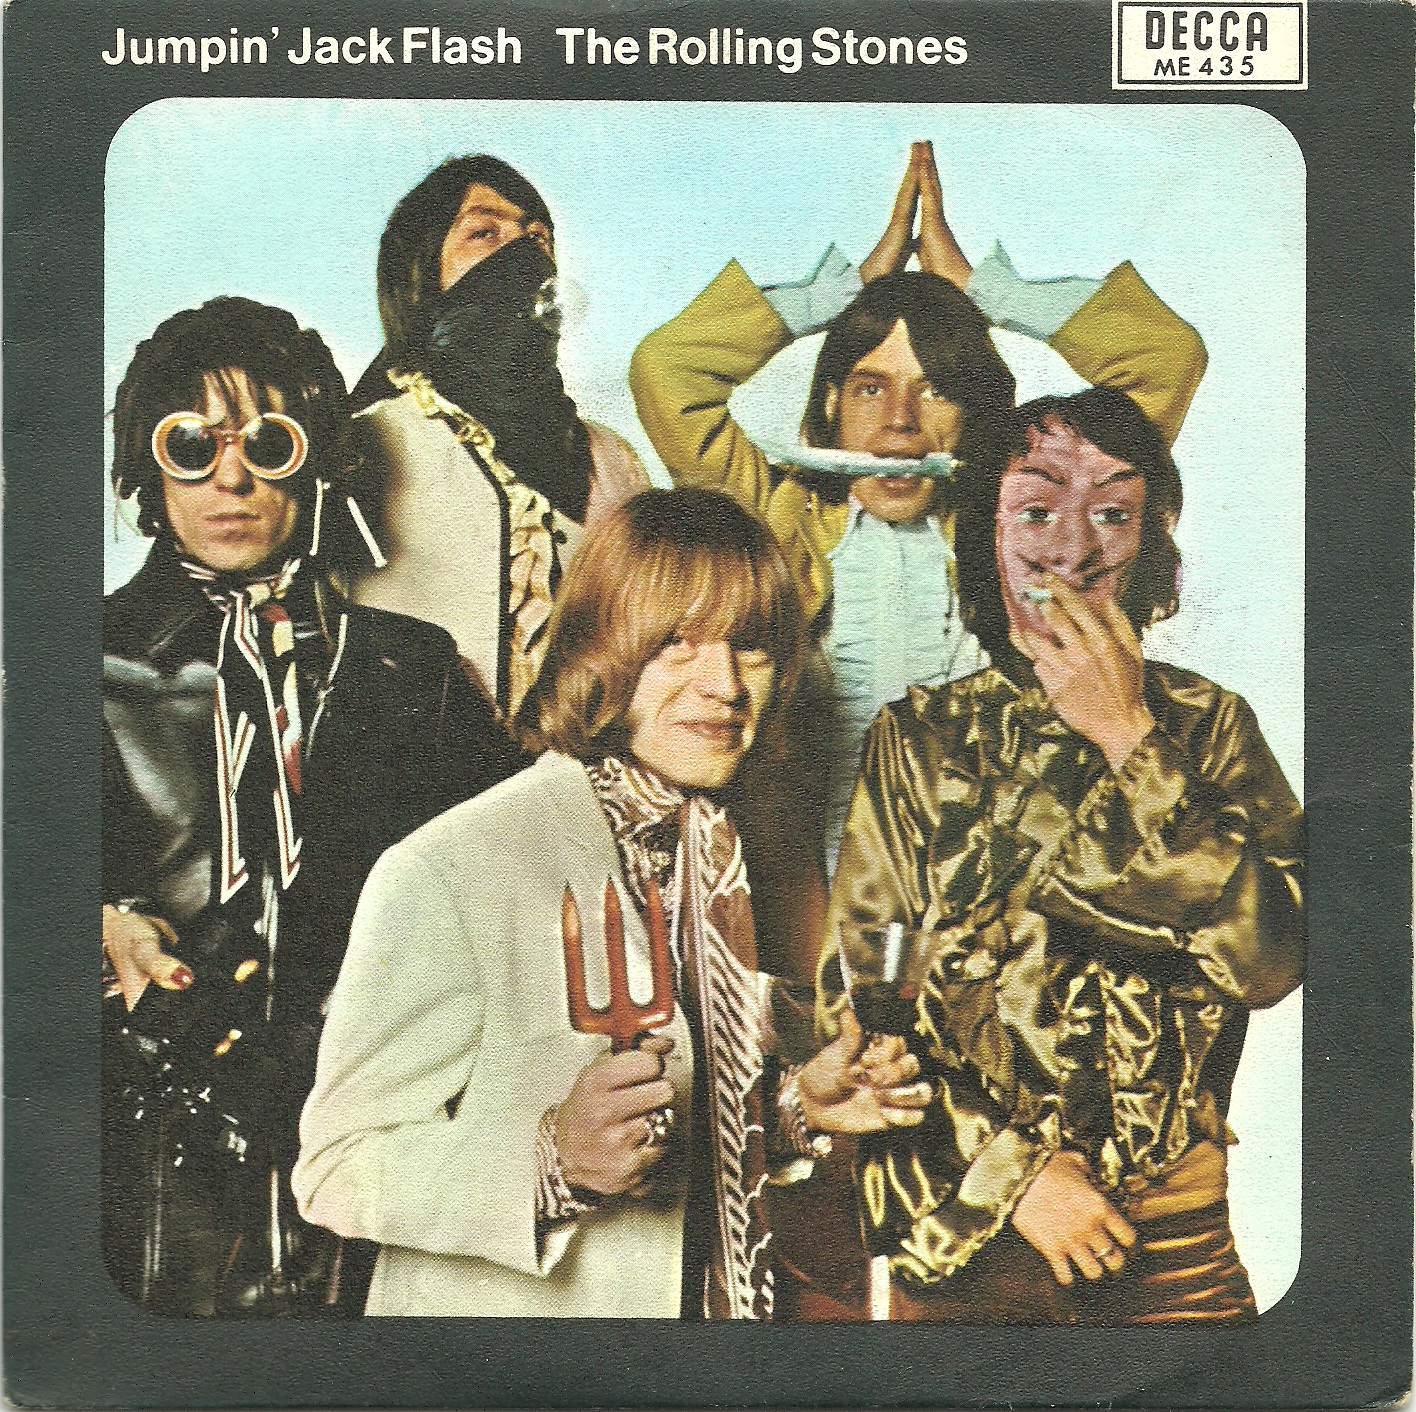 jumping jack flash. | The Rolling Stones | Pinterest